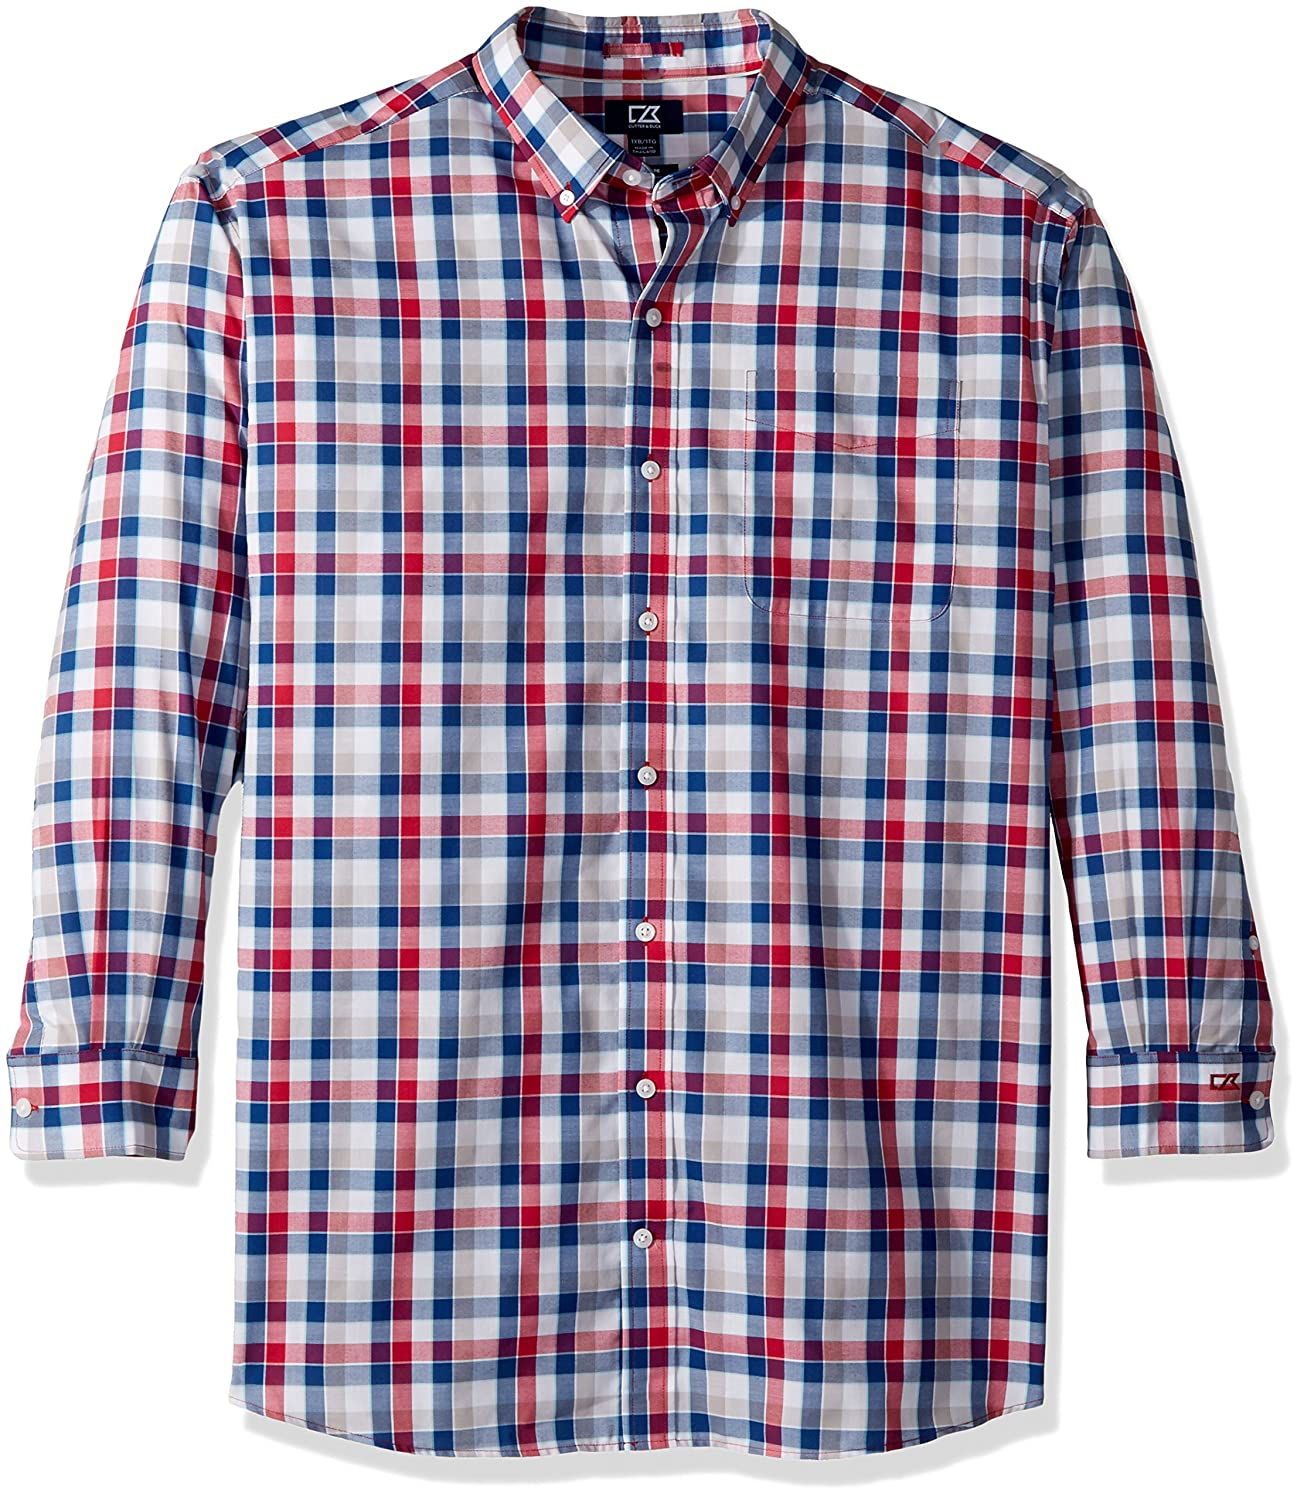 Cutter & Buck SHIRT メンズ B077PRB27D X-Large Tall|Virtual Dylan Plaid Virtual Dylan Plaid XLarge Tall